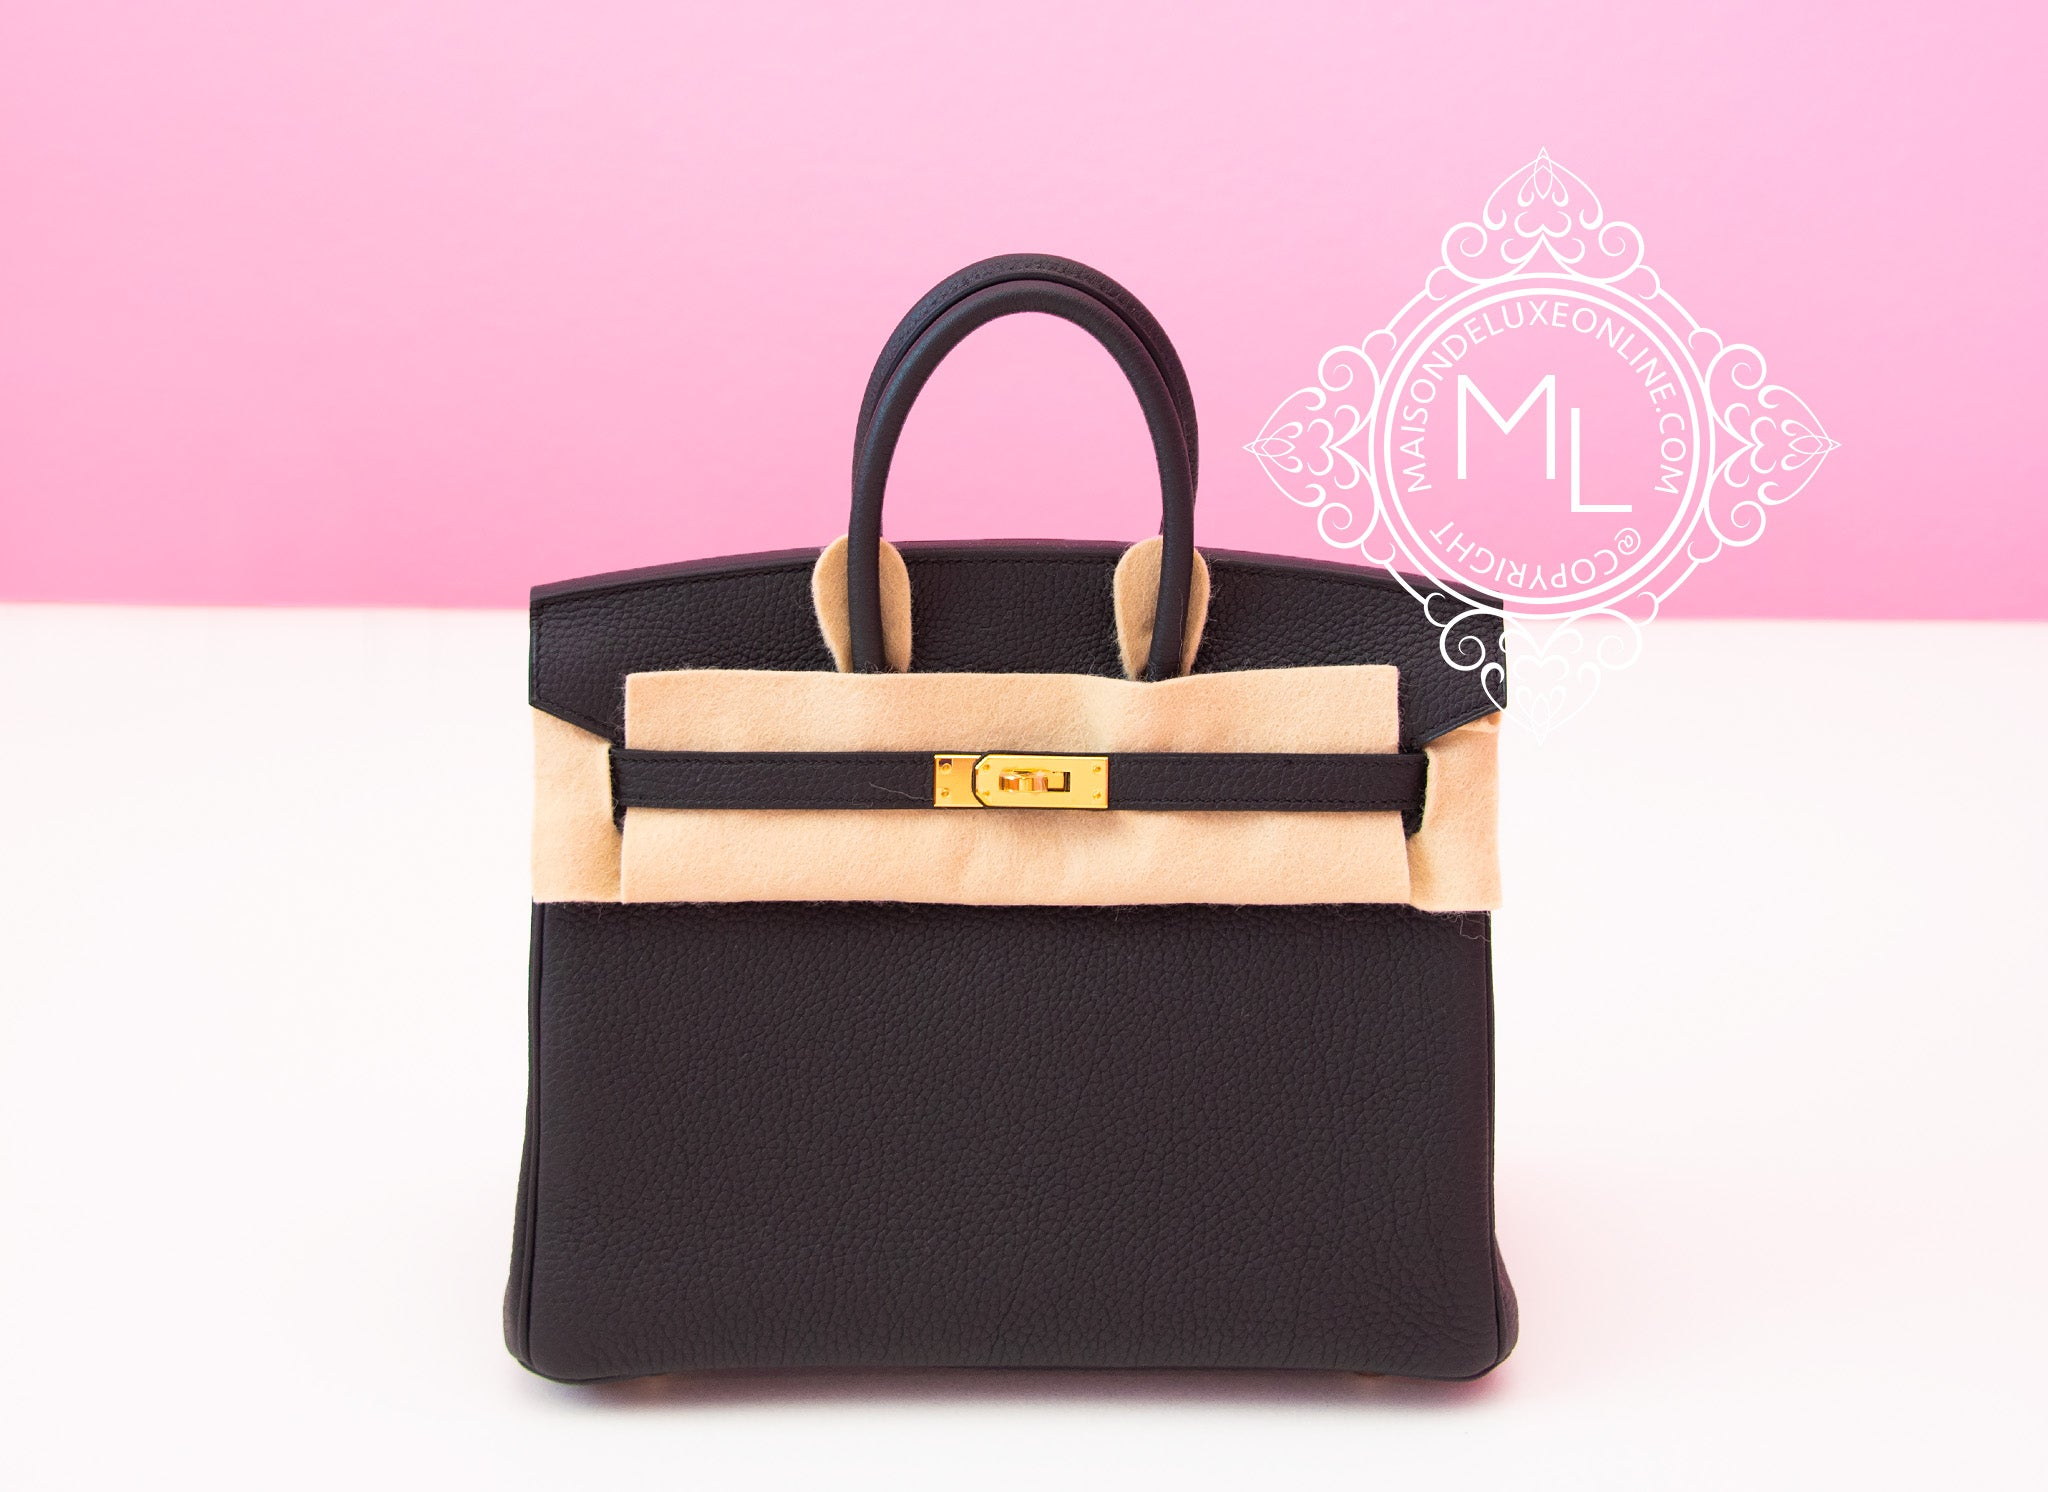 Hermes Noir Black Togo Birkin 25 Handbag Bag Kelly Tote Gold ... 772630298